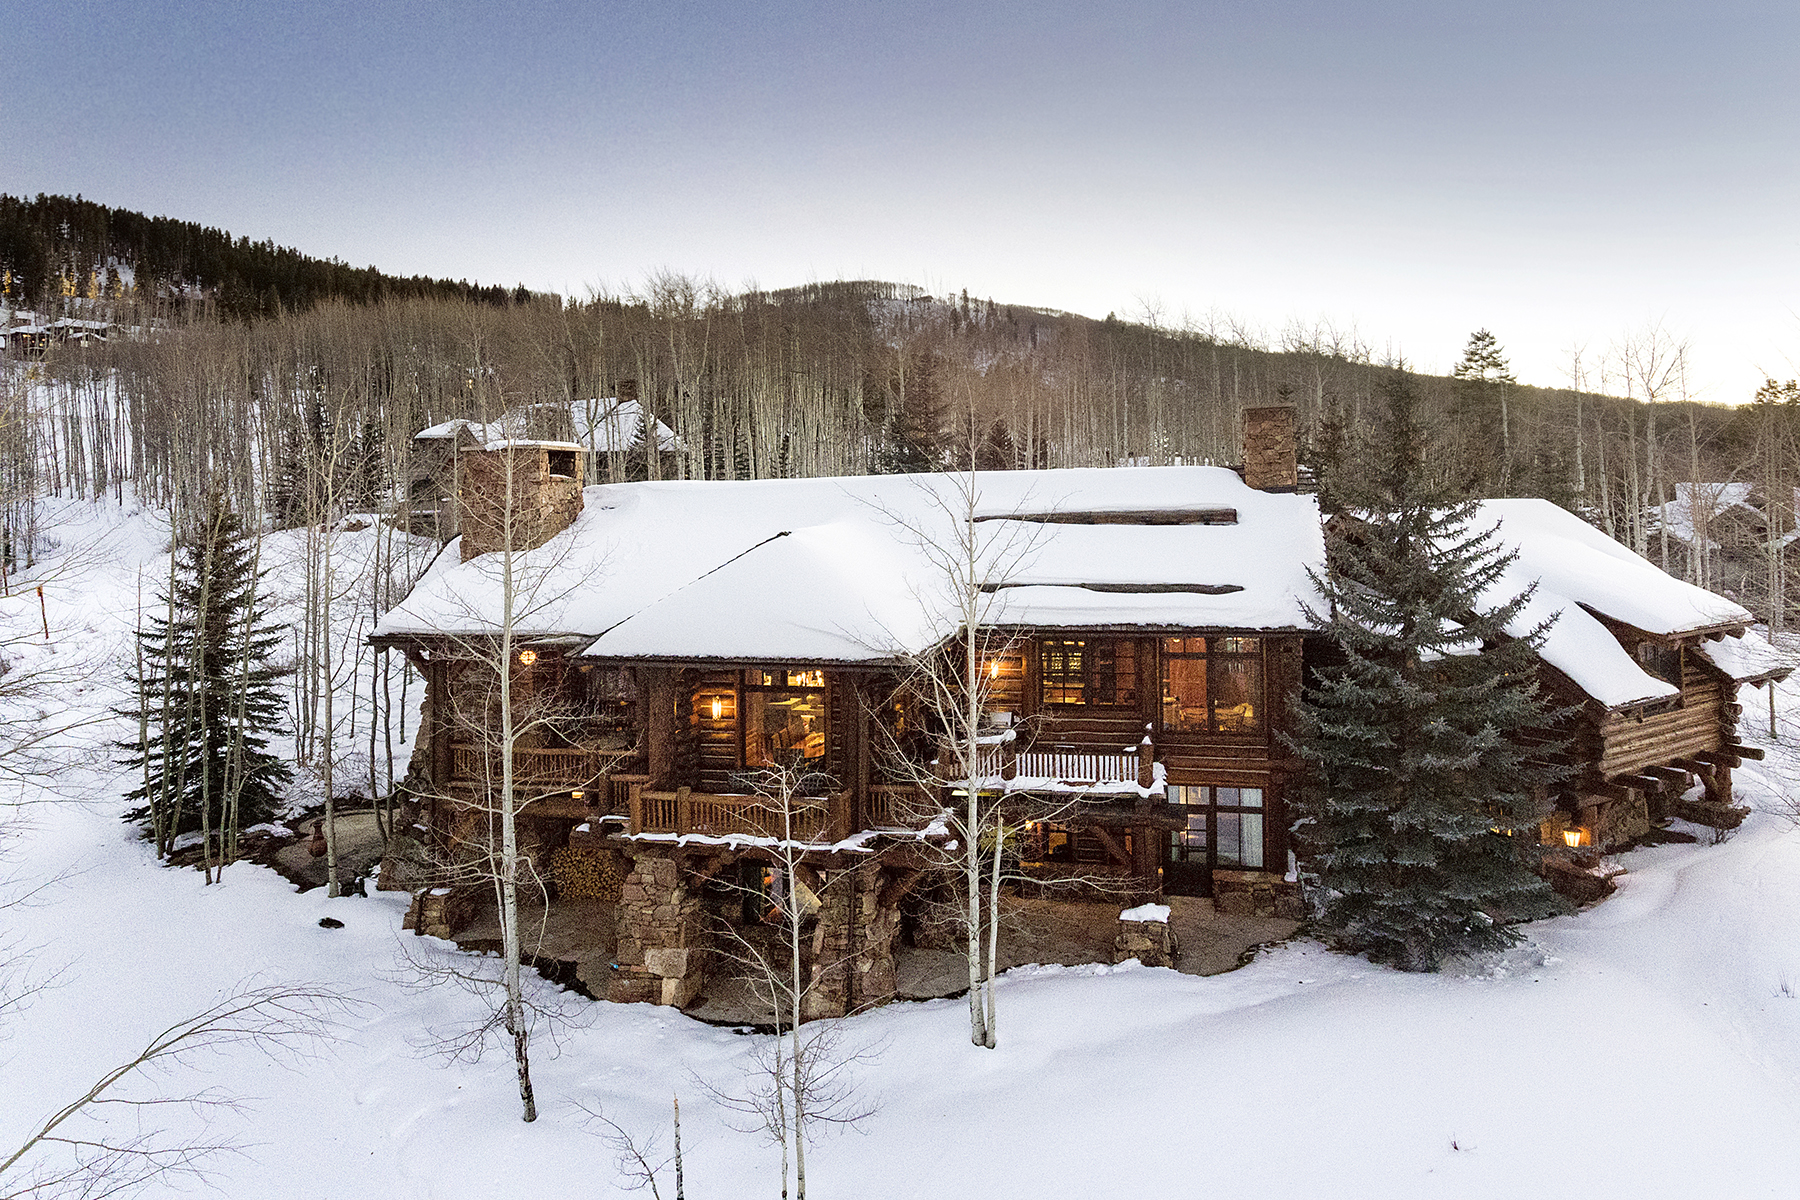 Single Family Home for Active at Private Ski-in/Ski-out 6-bedroom/6.5-bath Custom Log Home 2291 Daybreak Ridge Bachelor Gulch, Colorado 81620 United States